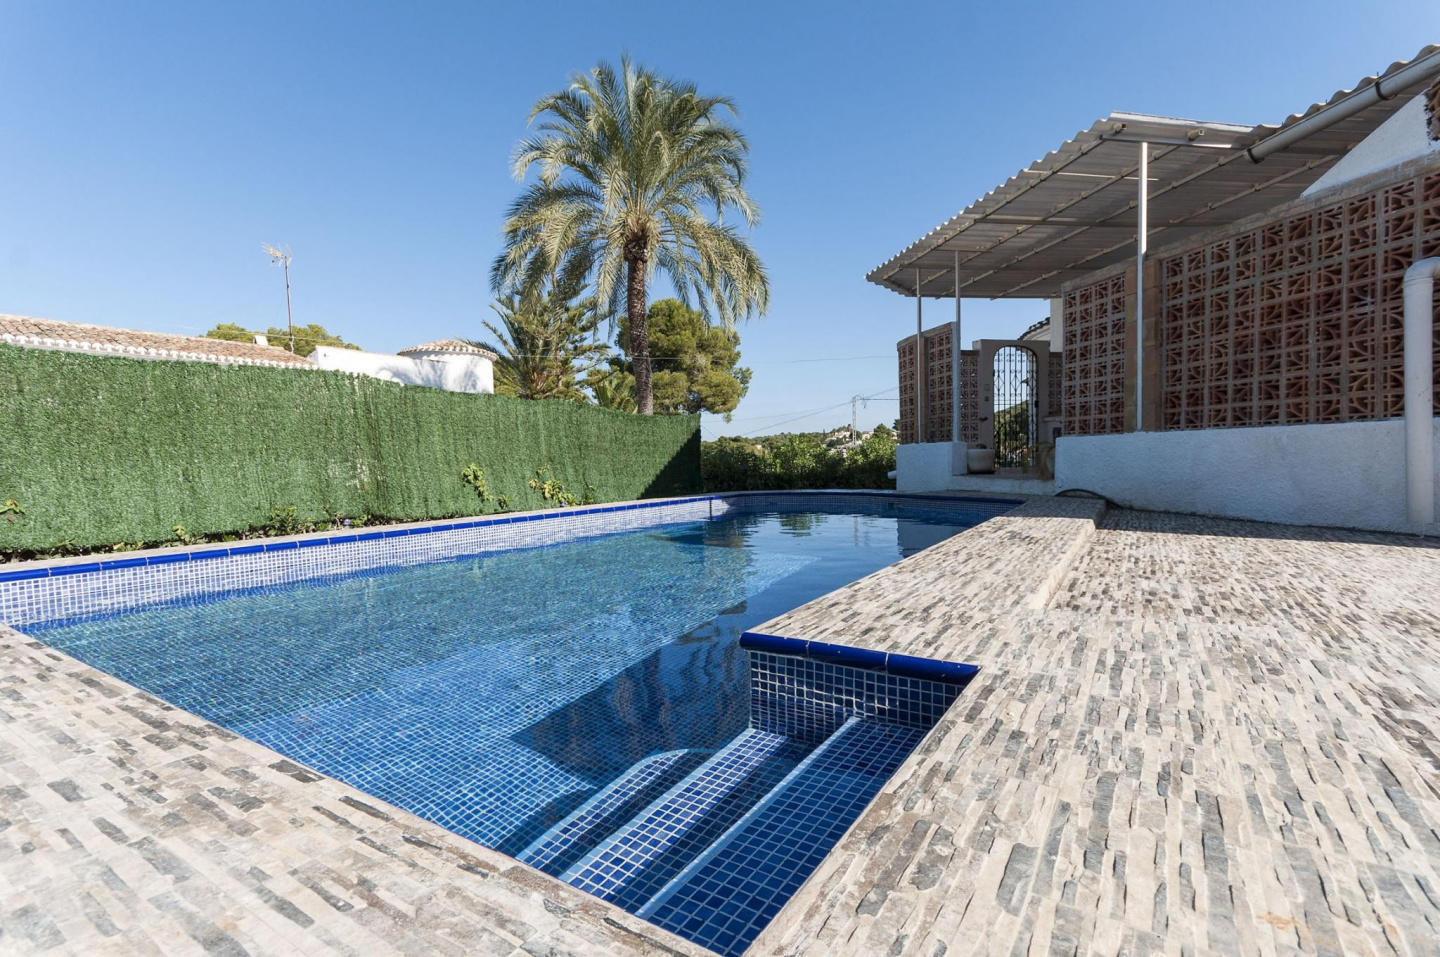 Spacious villa in the center of El Tosalet with... Slide-1